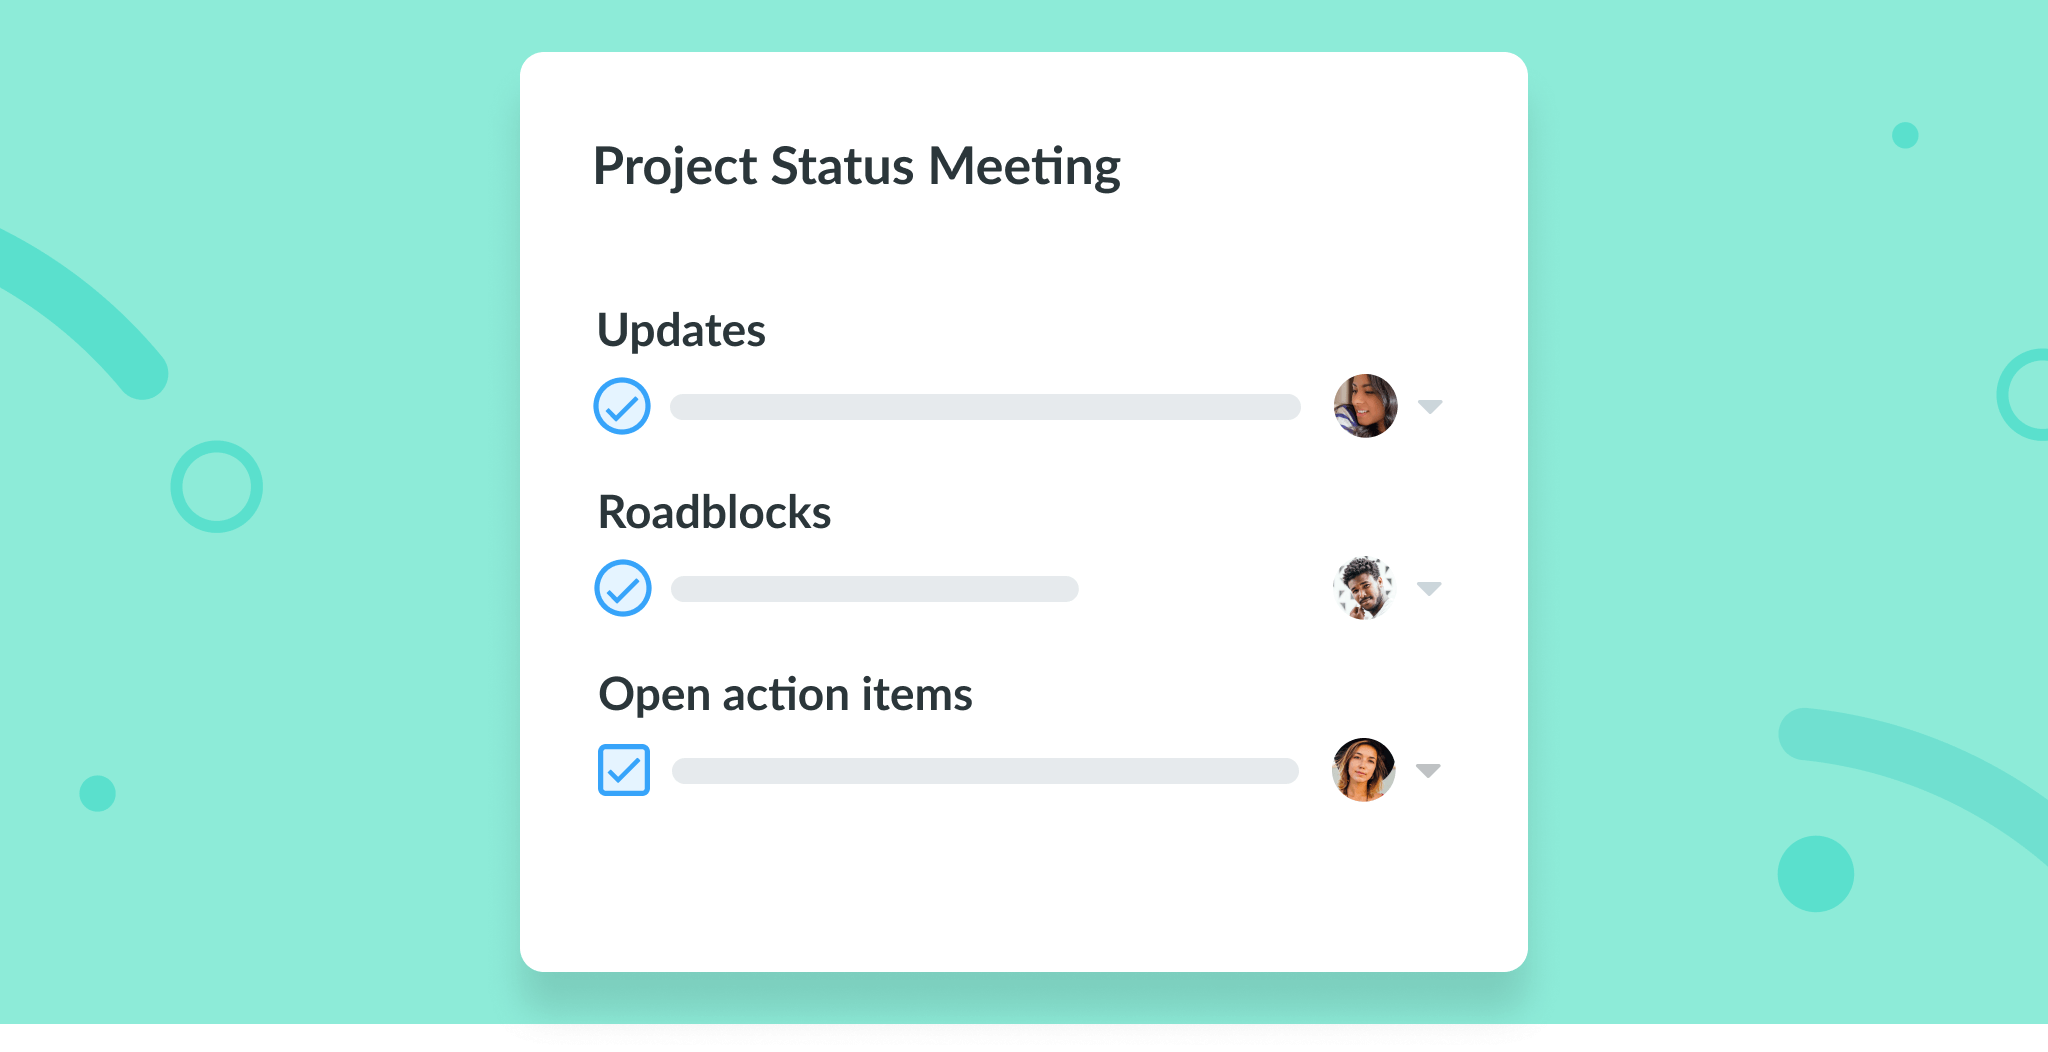 Project Status Meeting